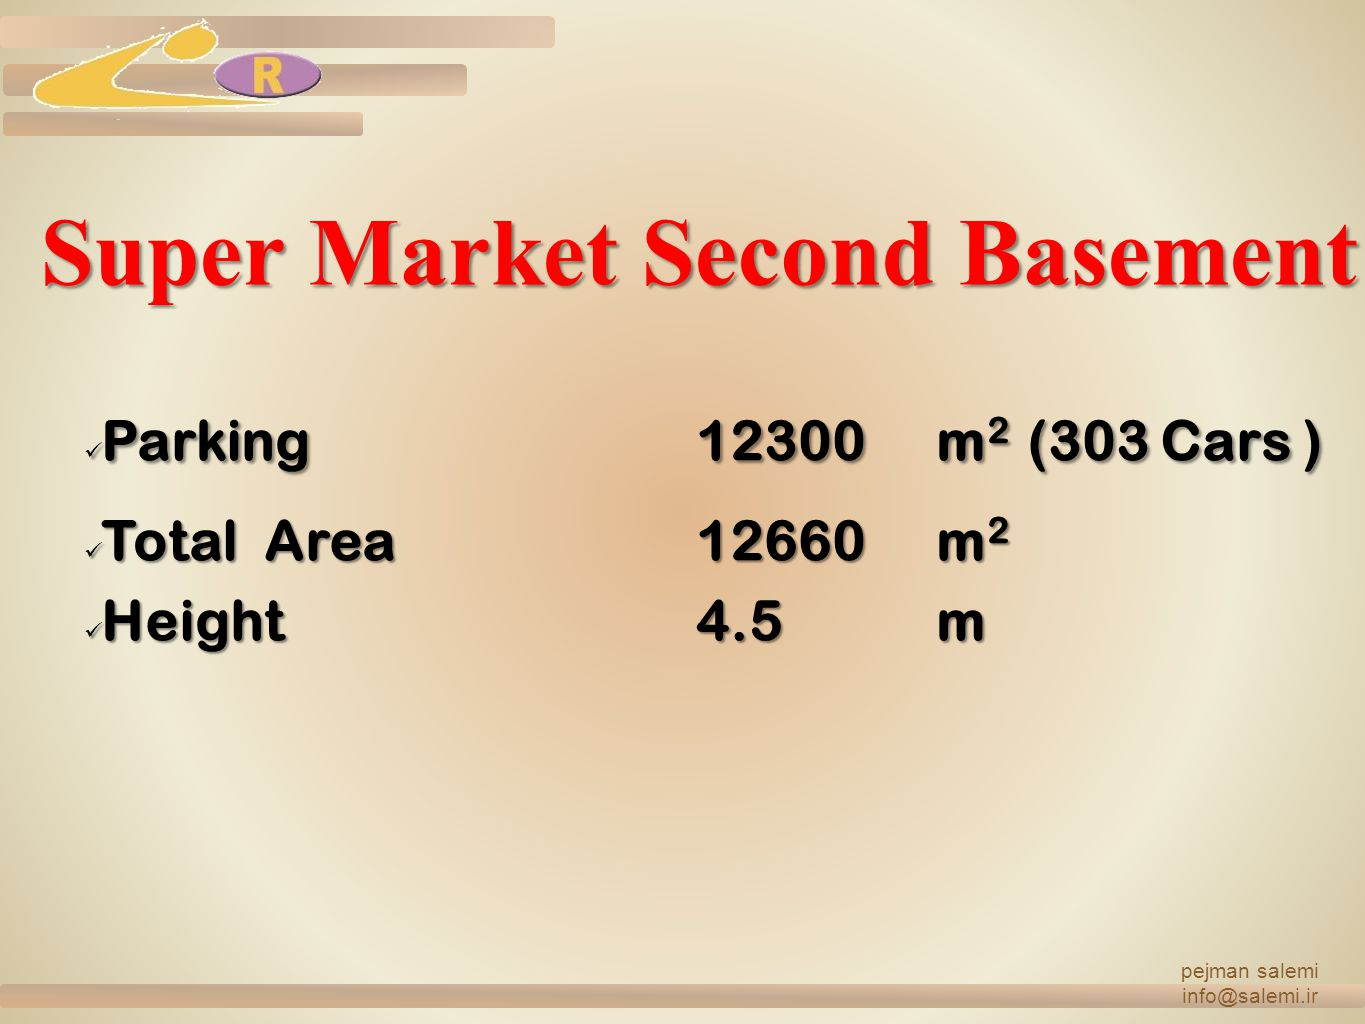 Super Market Second Basement